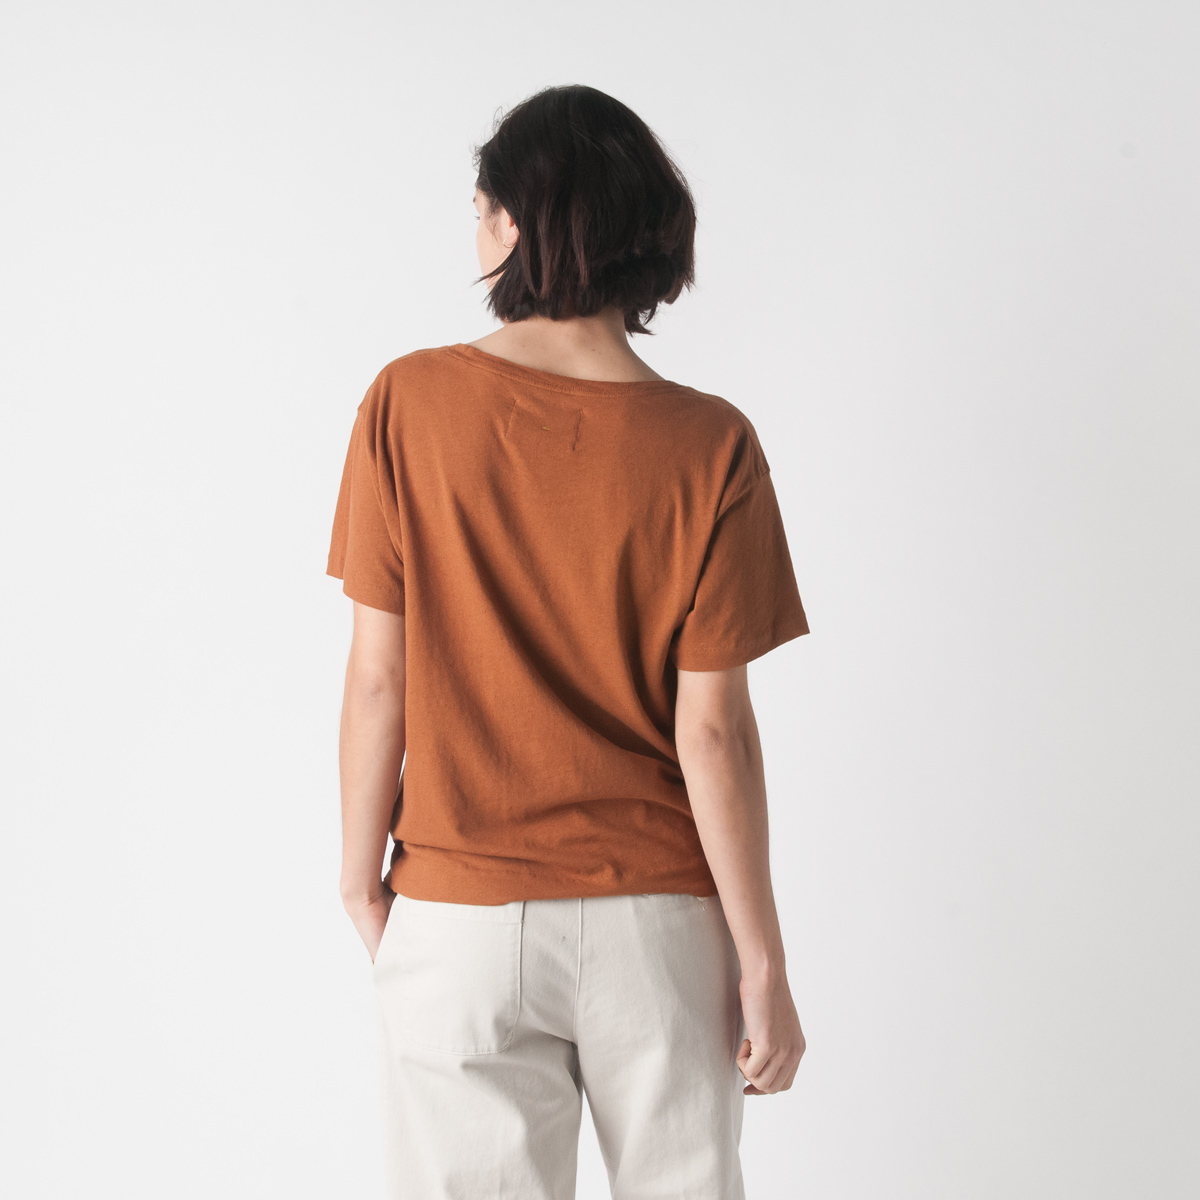 Mhl cotton linen jersey loose tee in copper garmentory for Unique home stays jersey